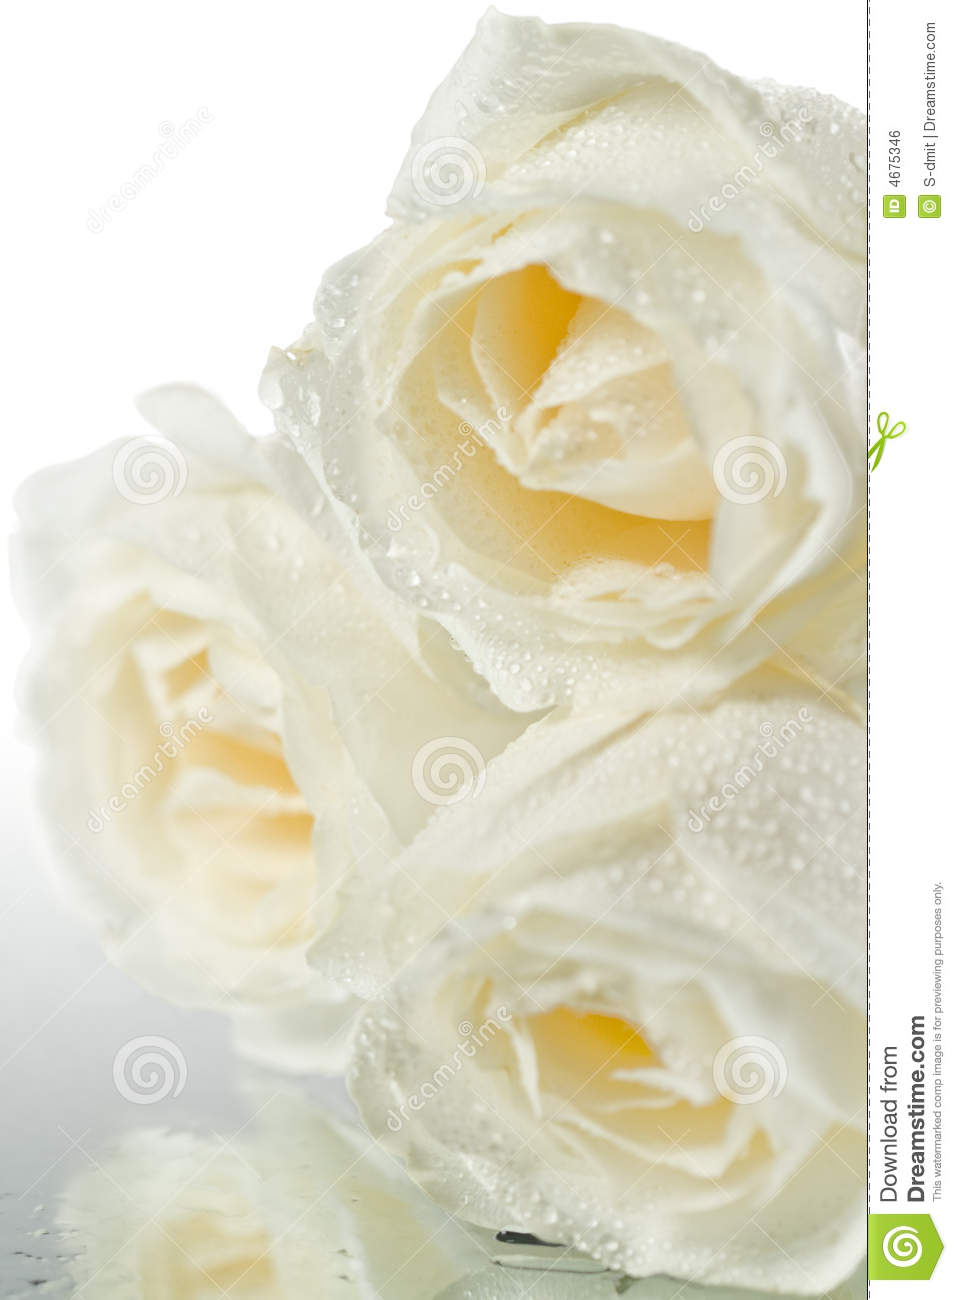 Wallpaper 3d Animation Free Download Three White Roses With Water Drops Royalty Free Stock